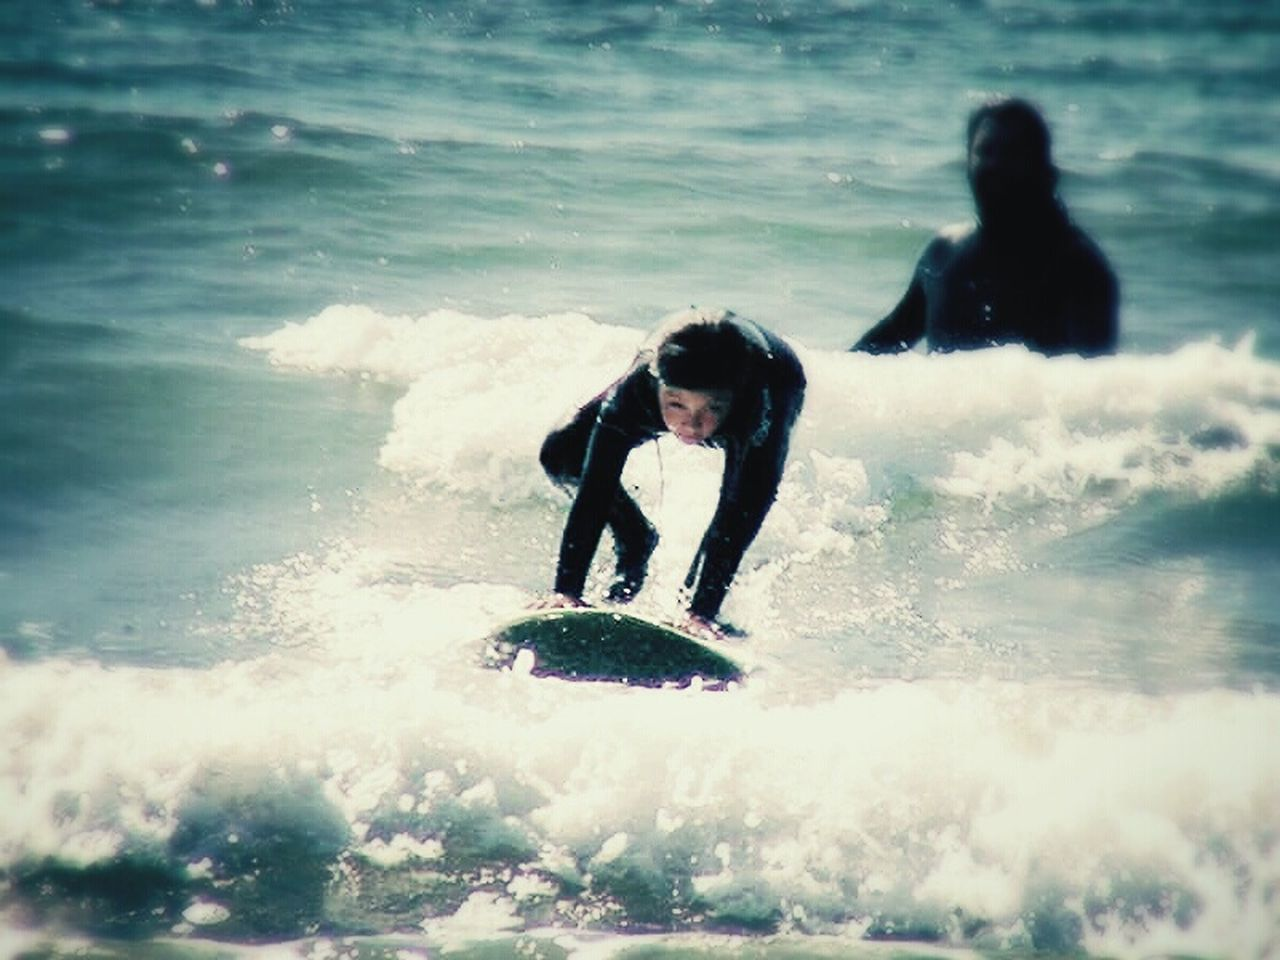 zoe surfing.a whole new world opens up for her. fortbragg Ca. Casper beach. Surf's Up Surfer Girl Ocean Pacific Ocean January Mendocinocounty FortBraggCA Eyeem Northen California Eyeem Children's Portraits Fortbragg